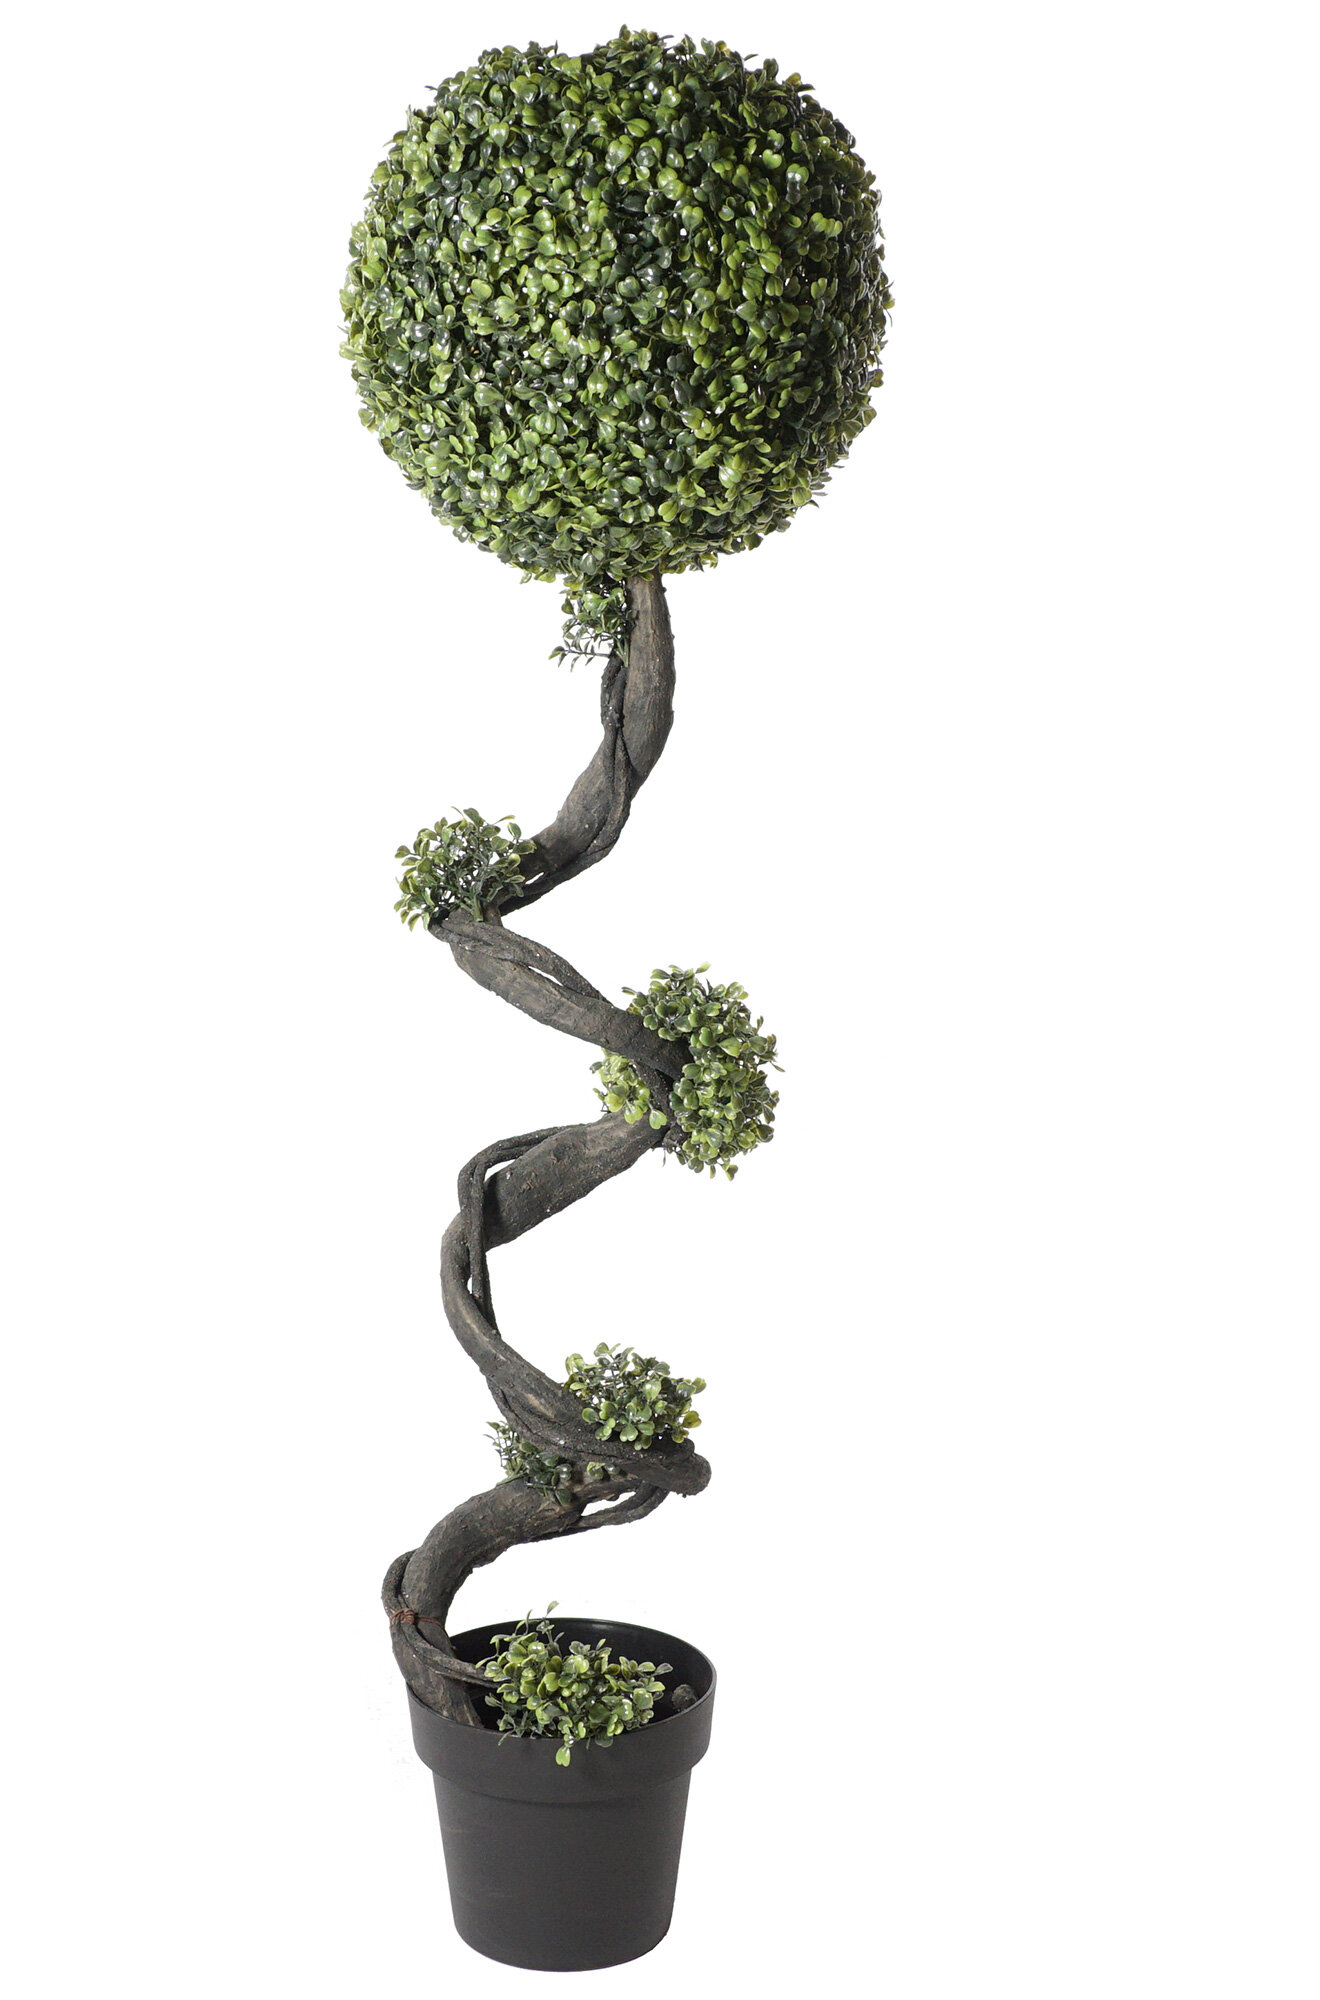 Home Decor Pair Of 3ft 4ft Spiral Potted Artificial Boxwood Topiary Spiral Trees W Planter Home Furniture Diy Cruzeirista Com Br